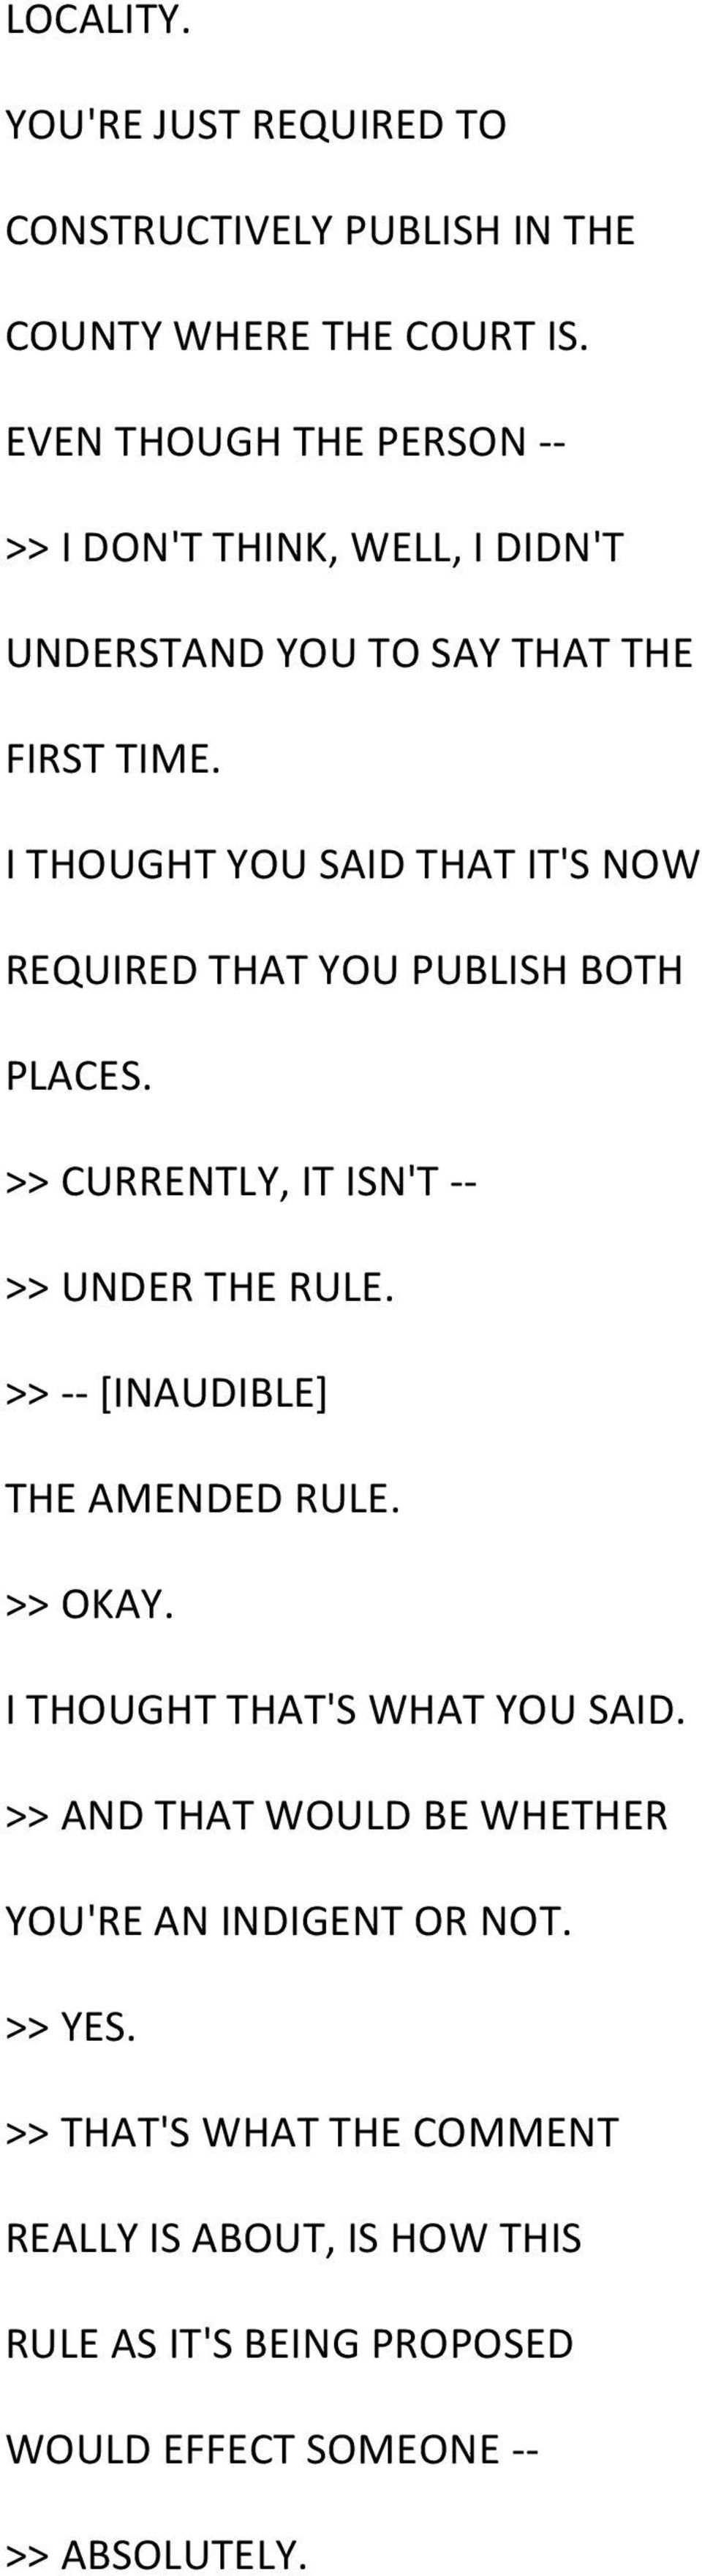 I THOUGHT YOU SAID THAT IT'S NOW REQUIRED THAT YOU PUBLISH BOTH PLACES. >> CURRENTLY, IT ISN'T - - >> UNDER THE RULE.